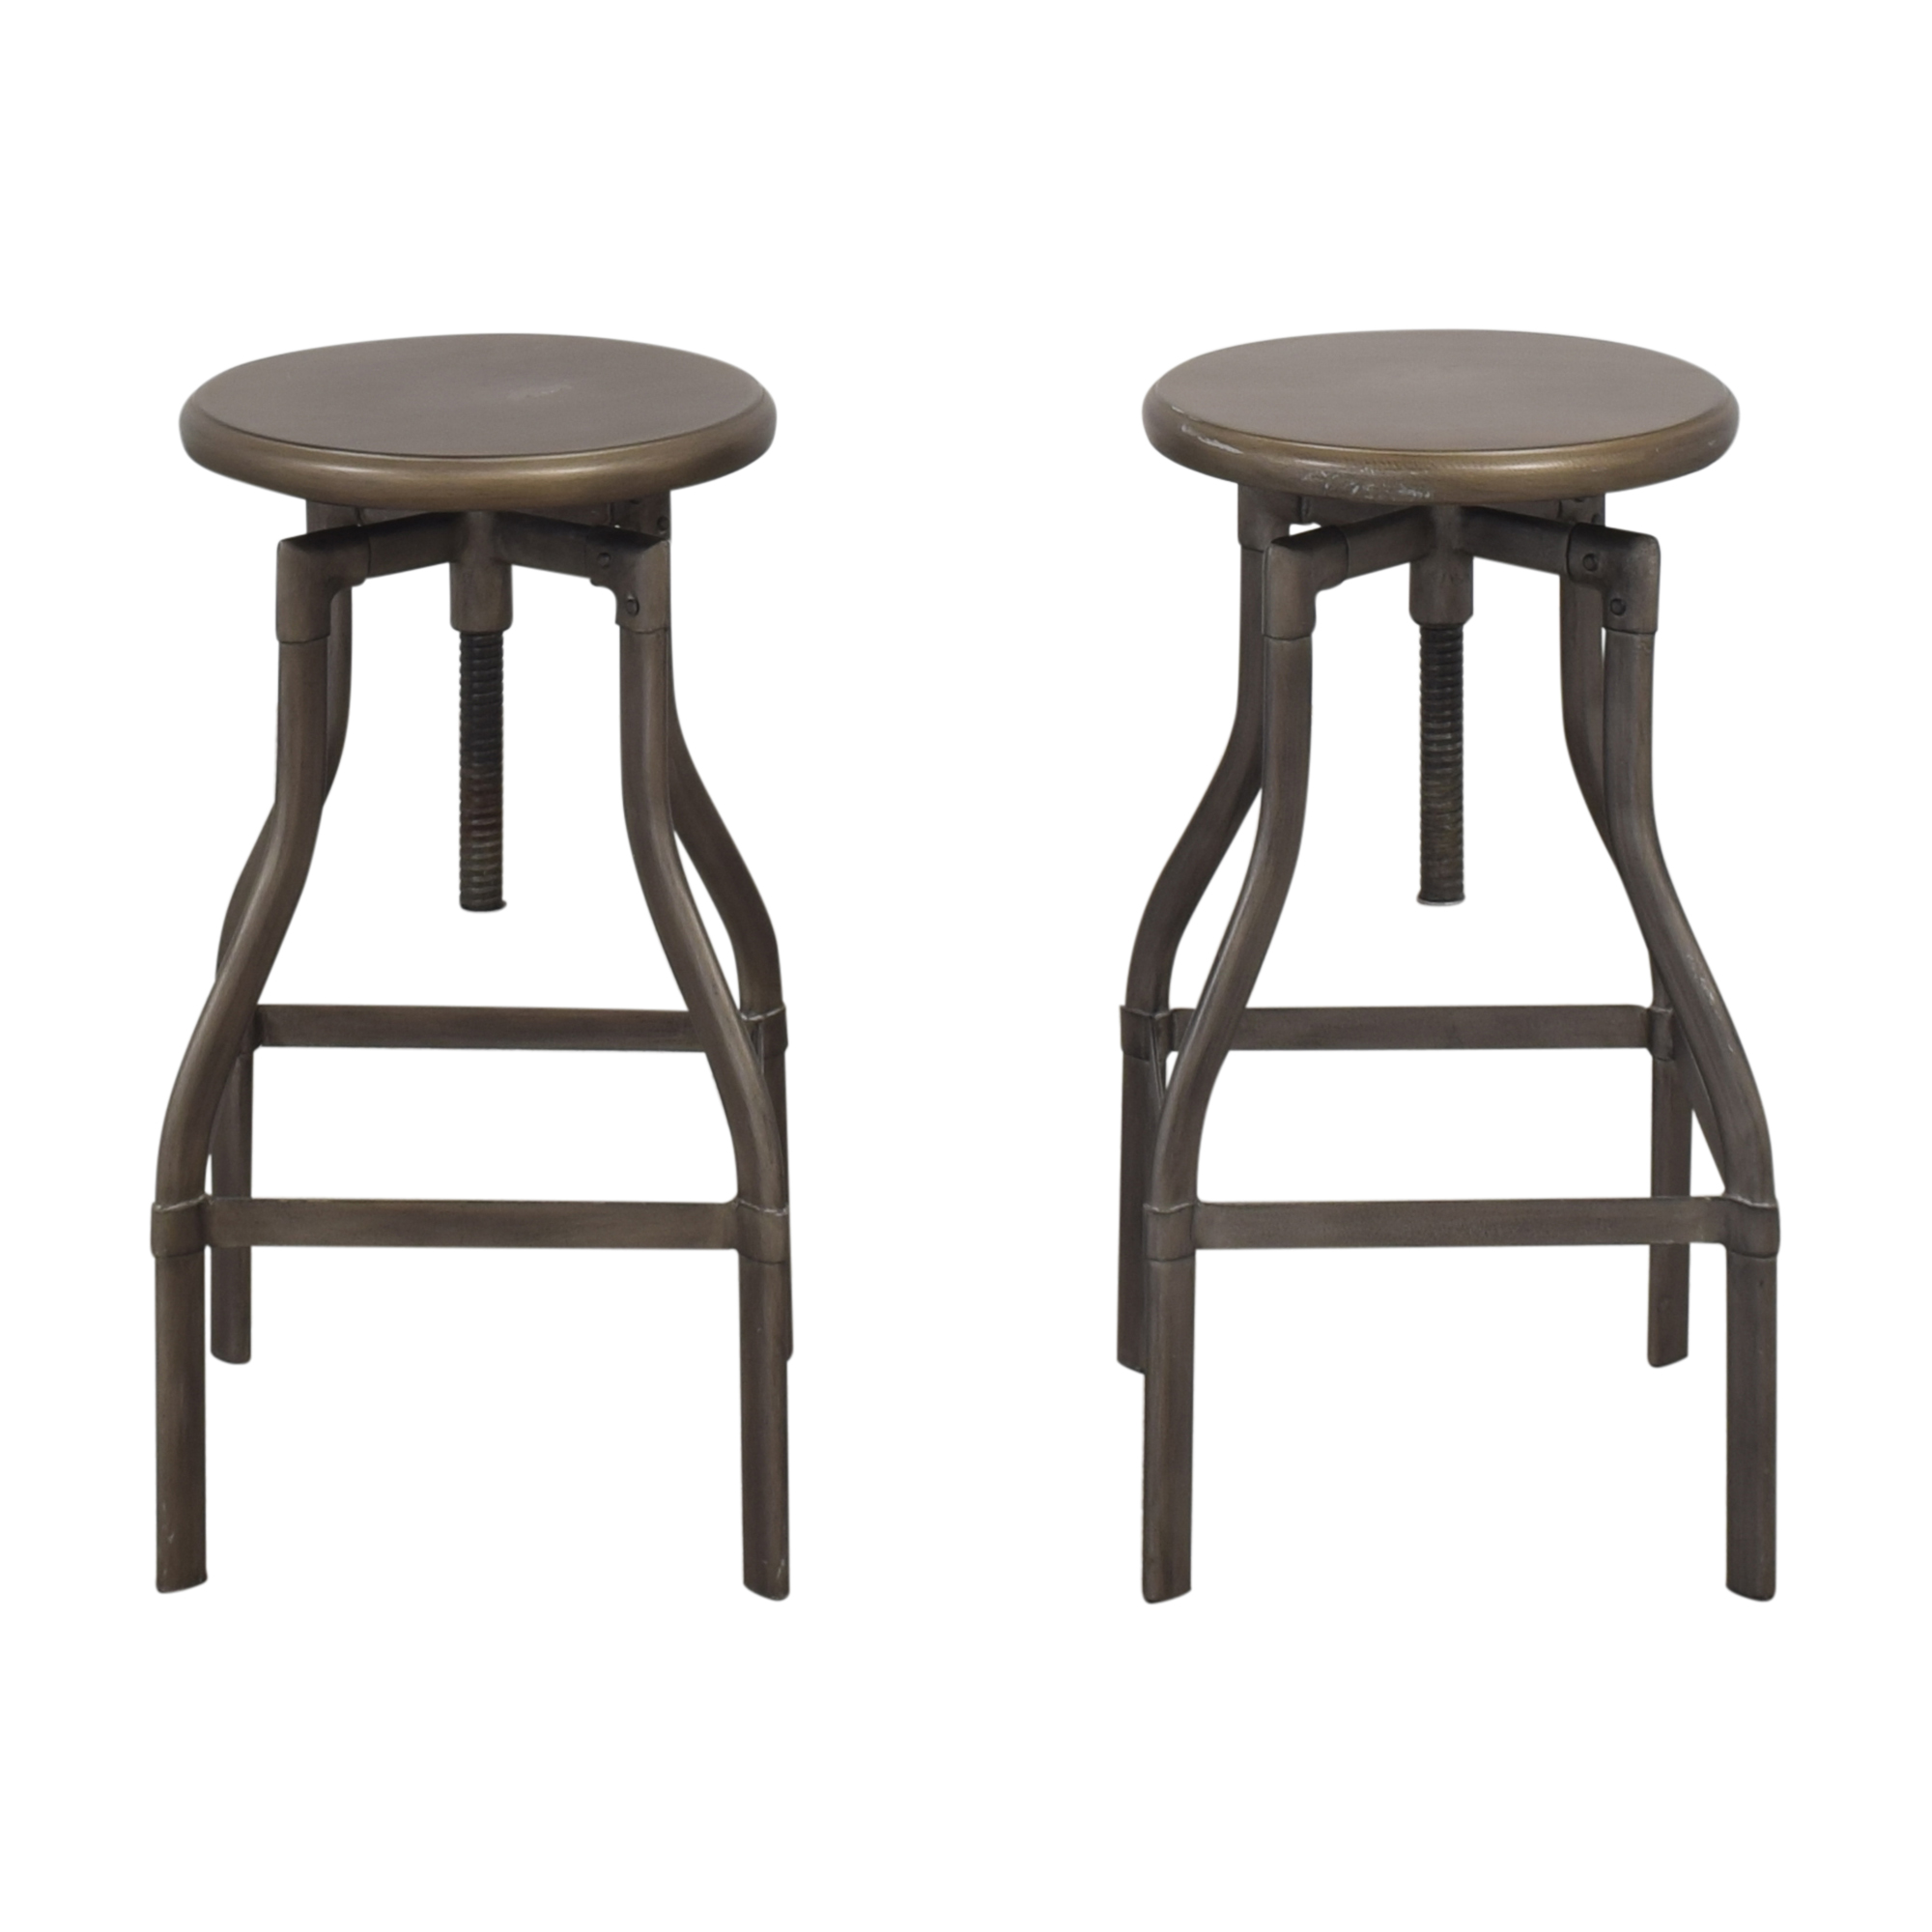 Crate & Barrel Turner Adjustable Stools Crate & Barrel